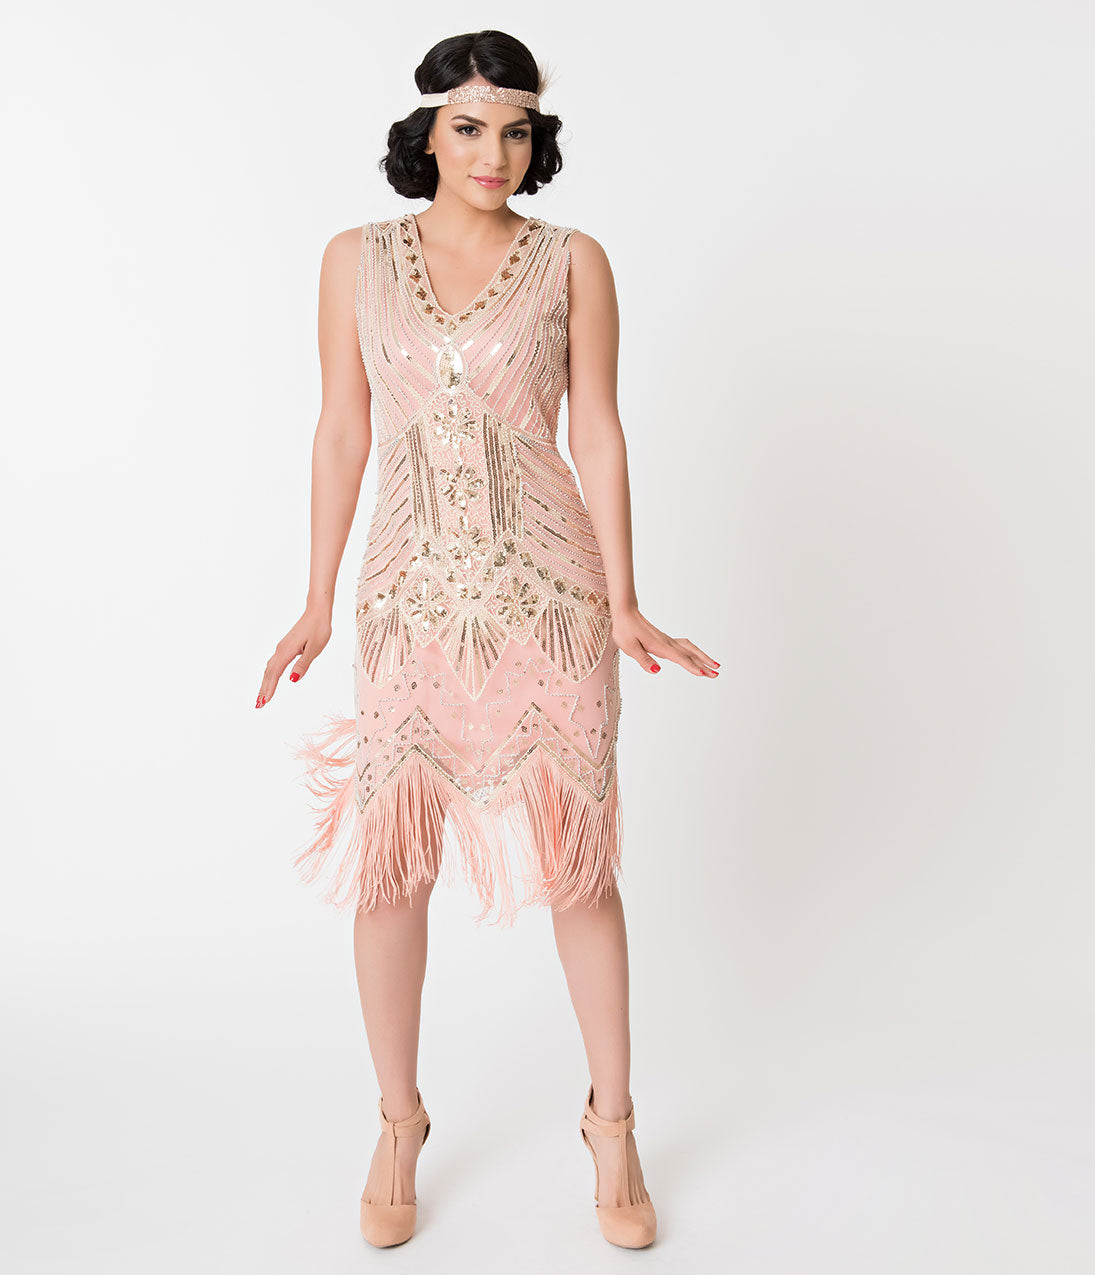 Top Great Gatsby Dress - Great Gatsby Dresses for Sale &RC93